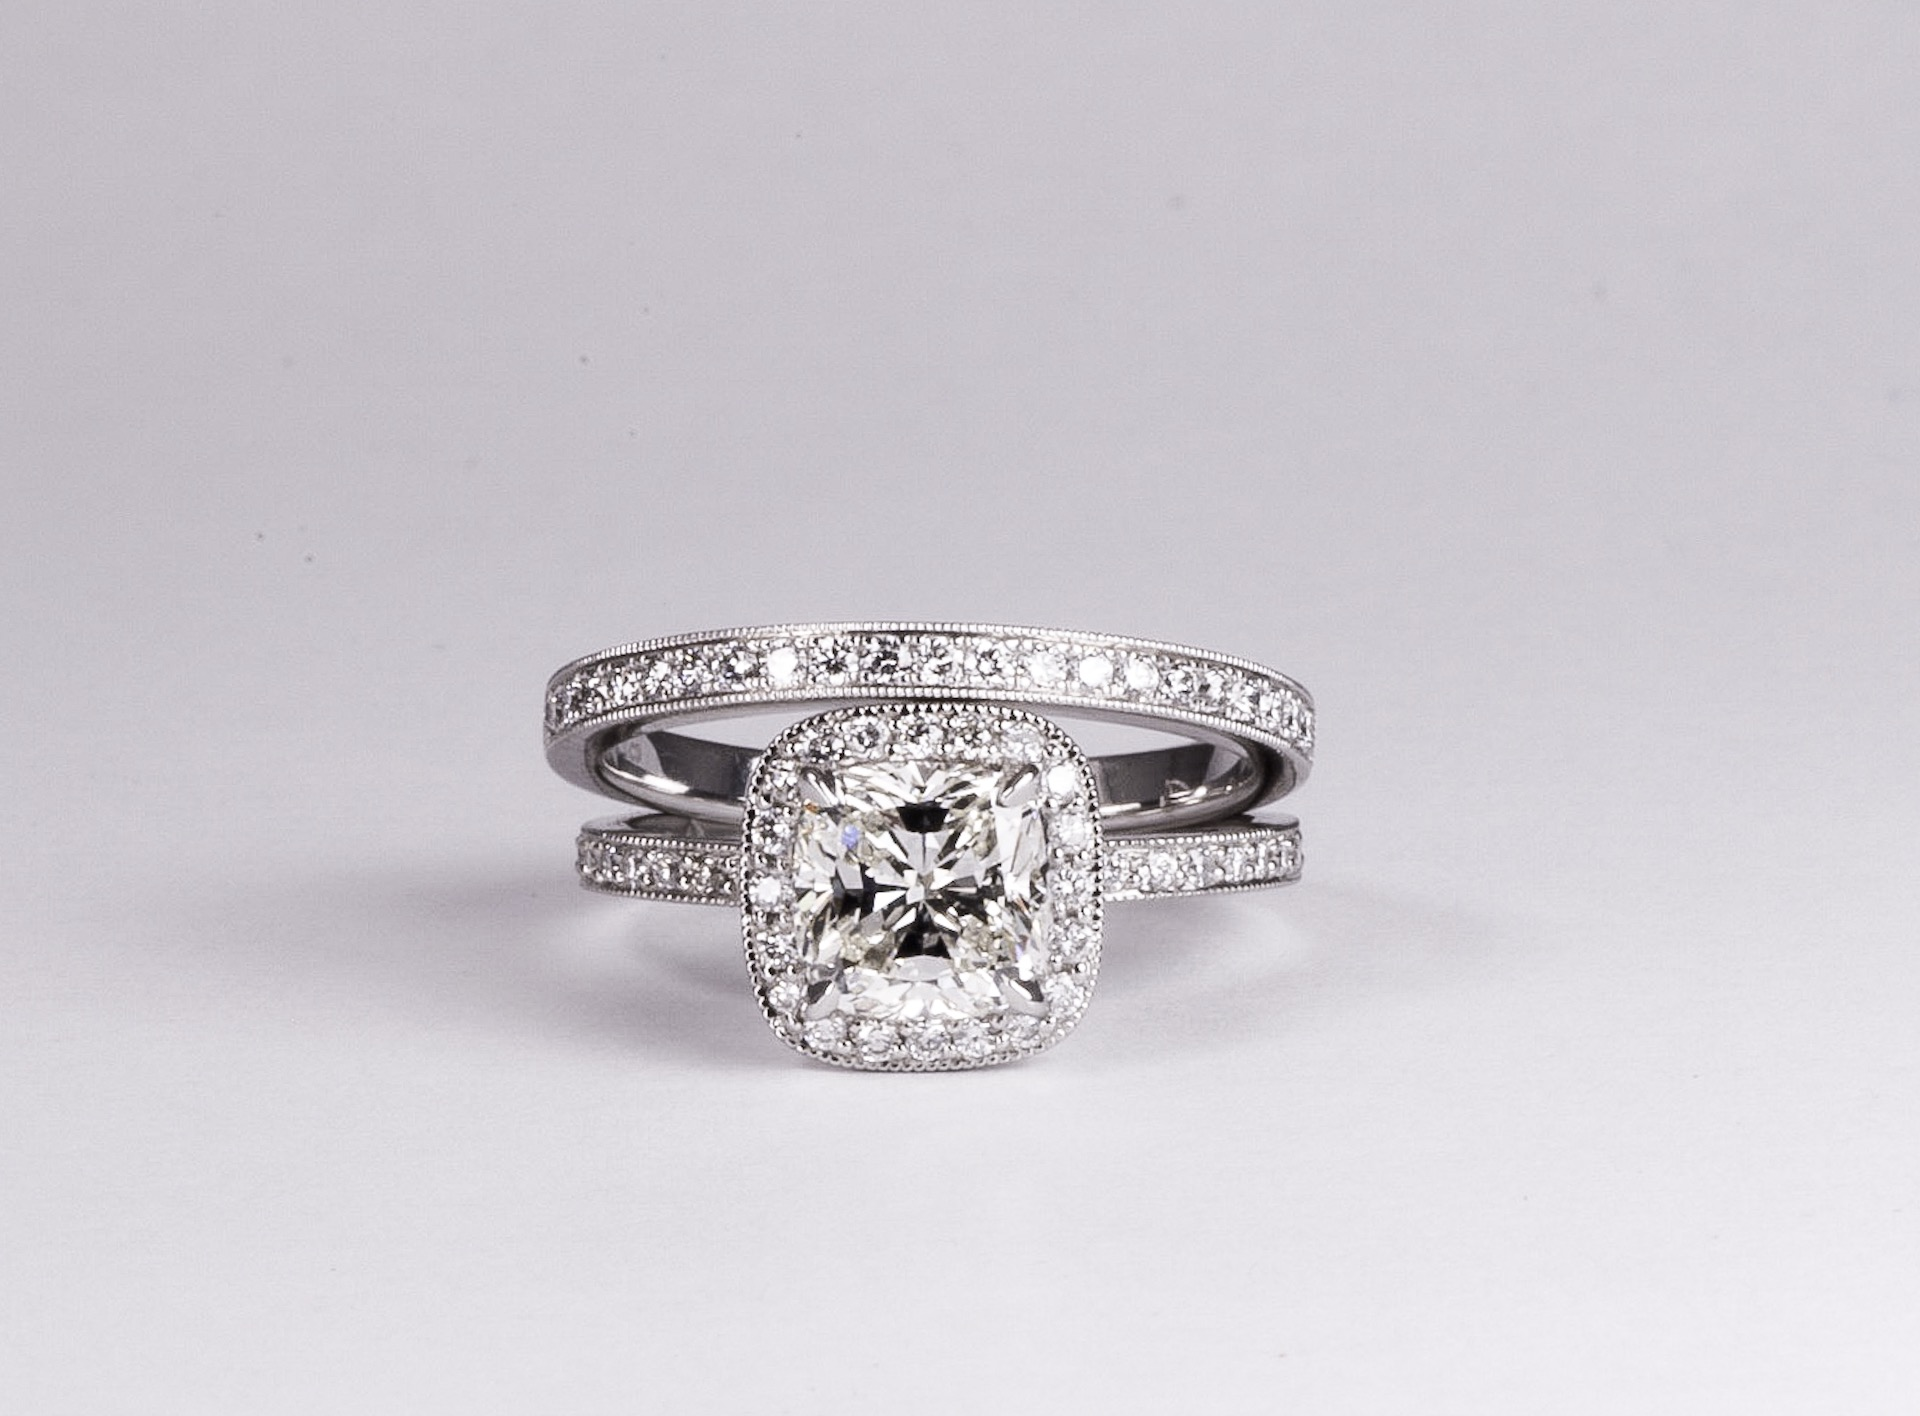 Copy of Cushion cut diamond with grain set diamond surround and shoulders finished with millegrain edge decoration. Made in Chichester, England.